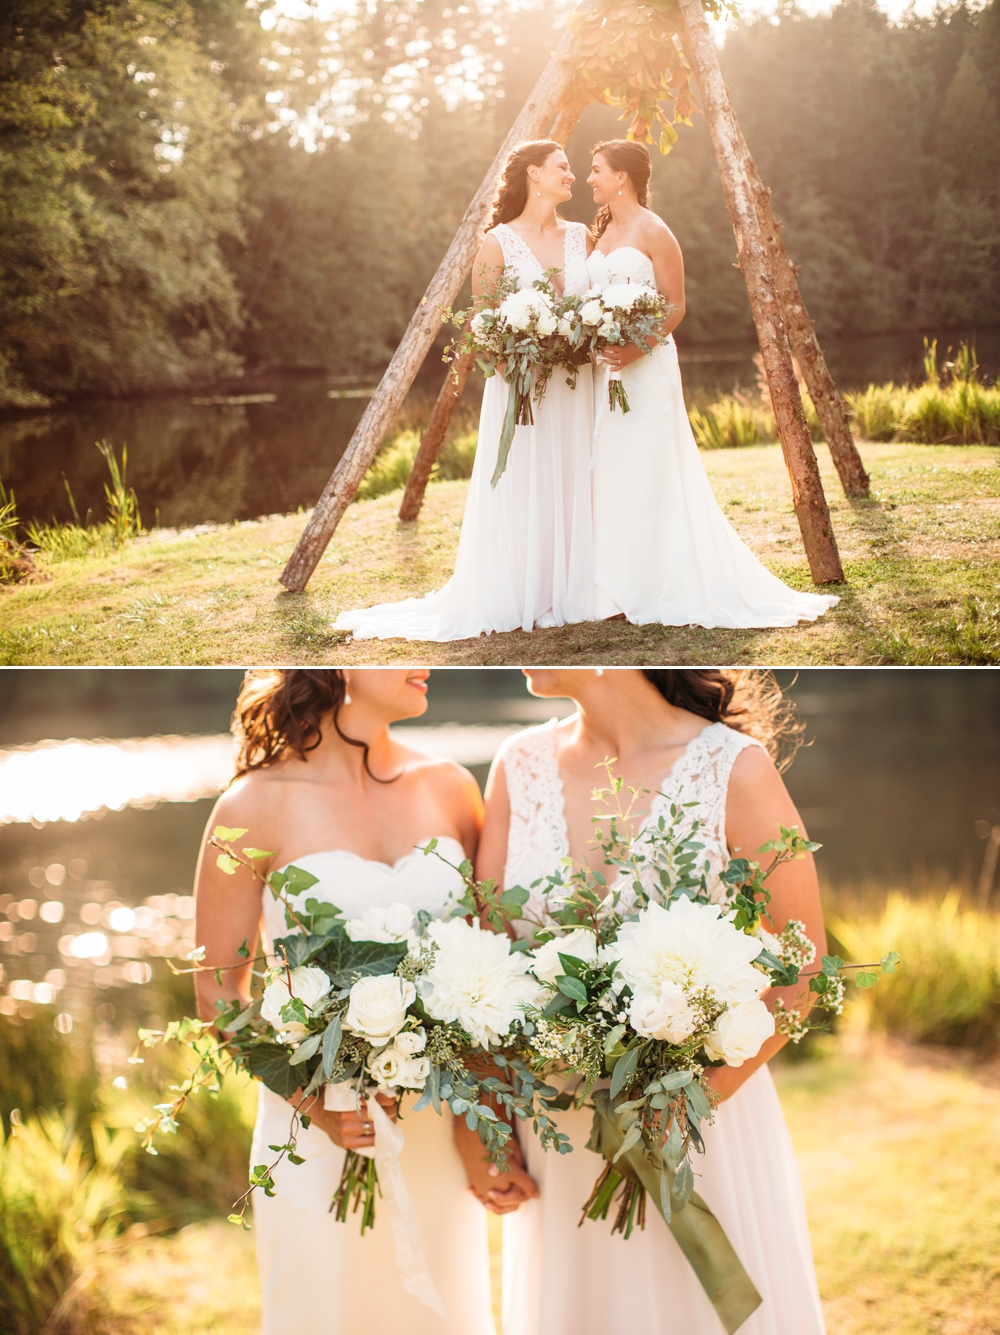 brides-hold-white-bouquets-by-wedding-teepee